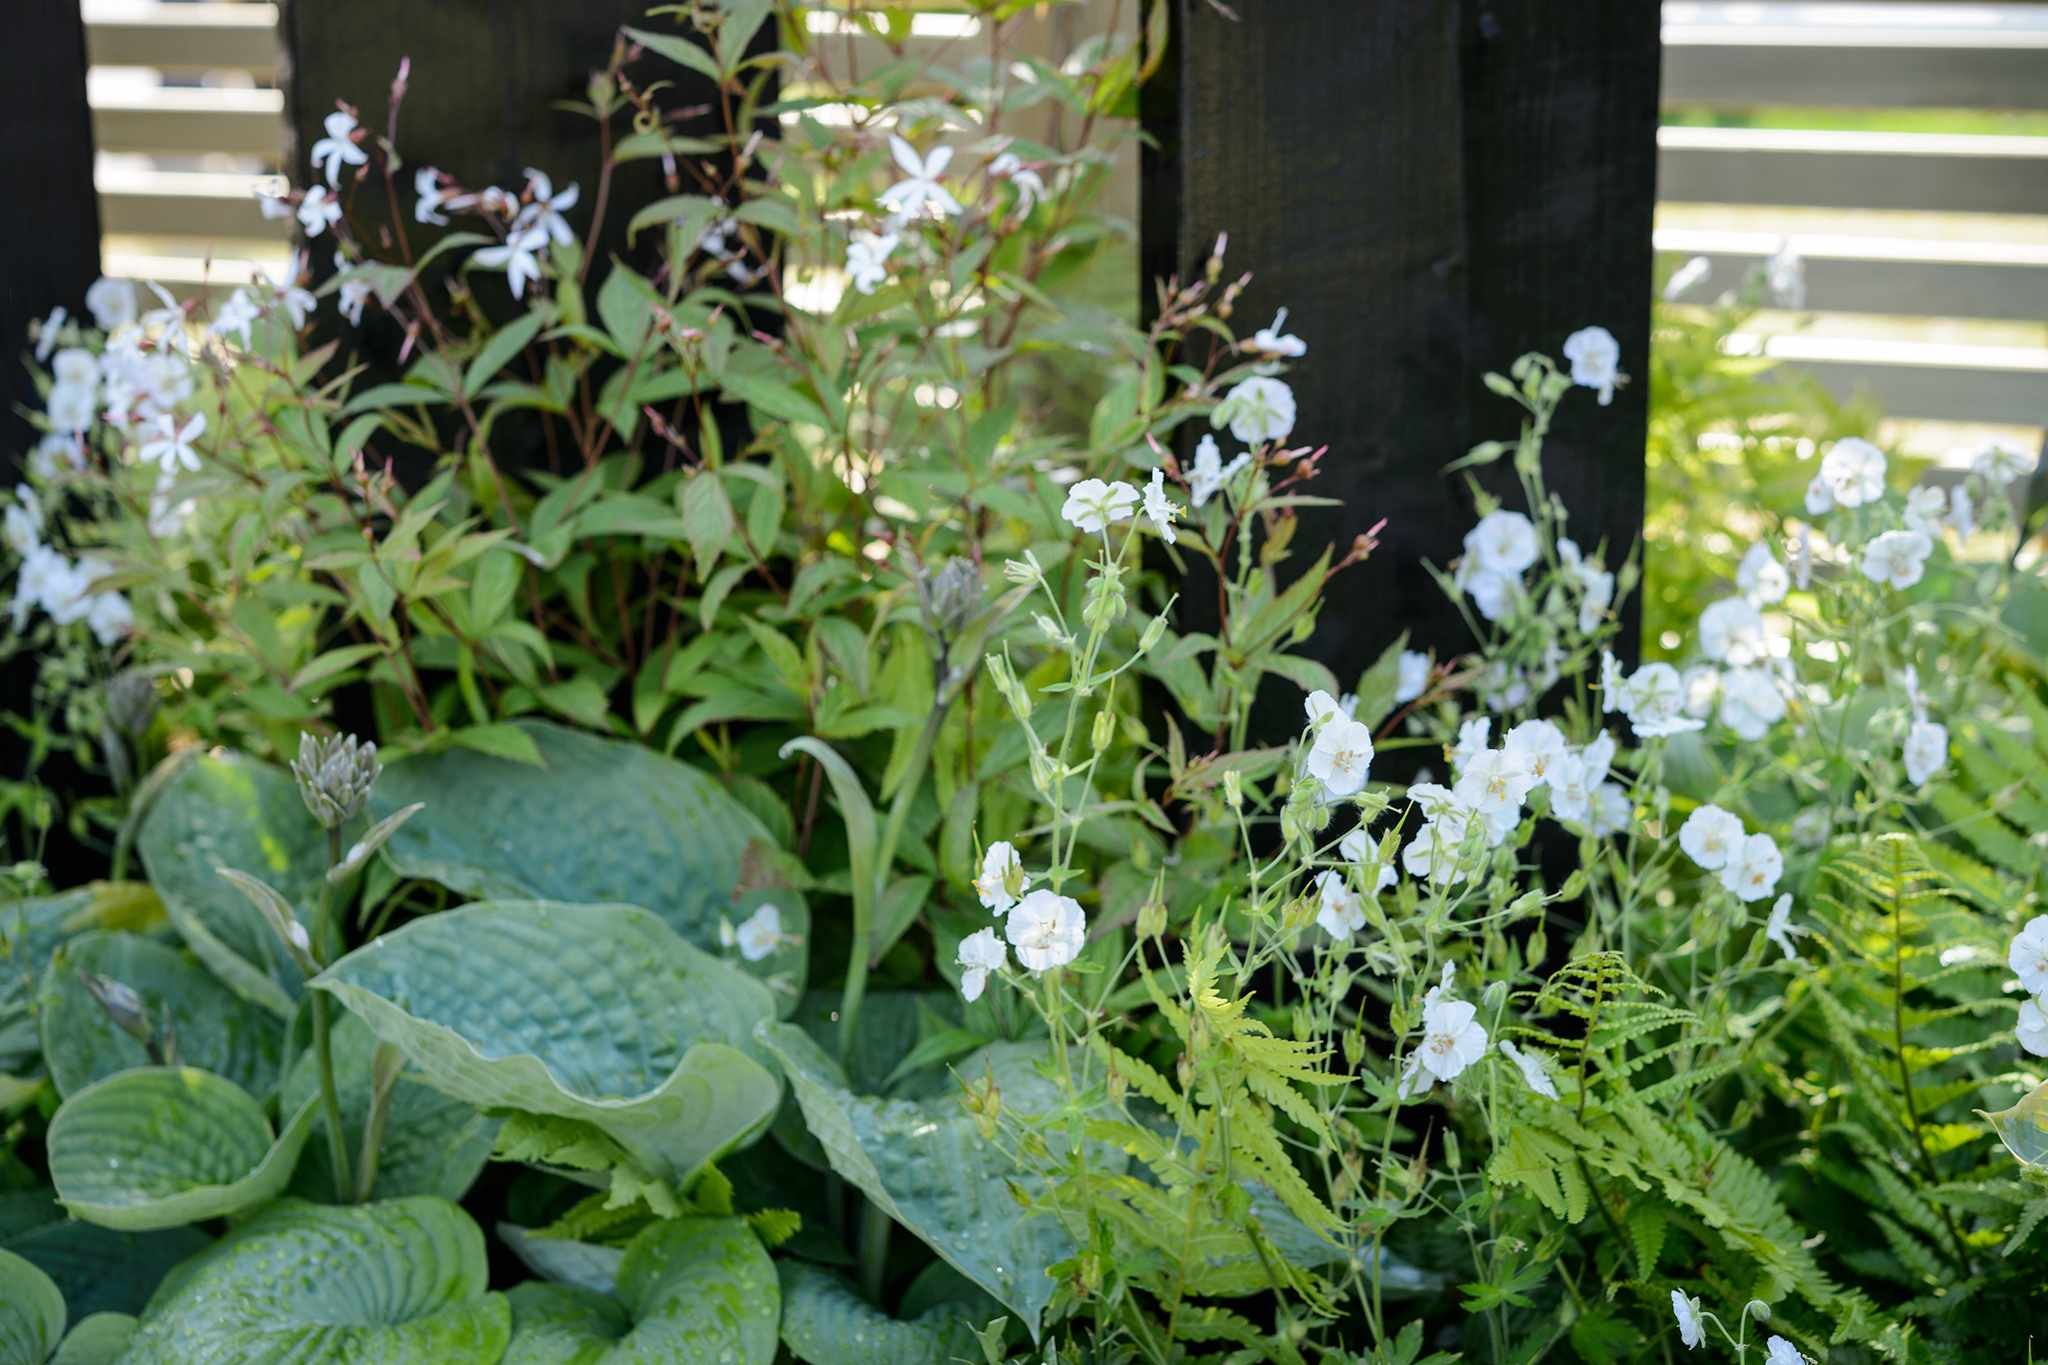 Hostas and geraniums